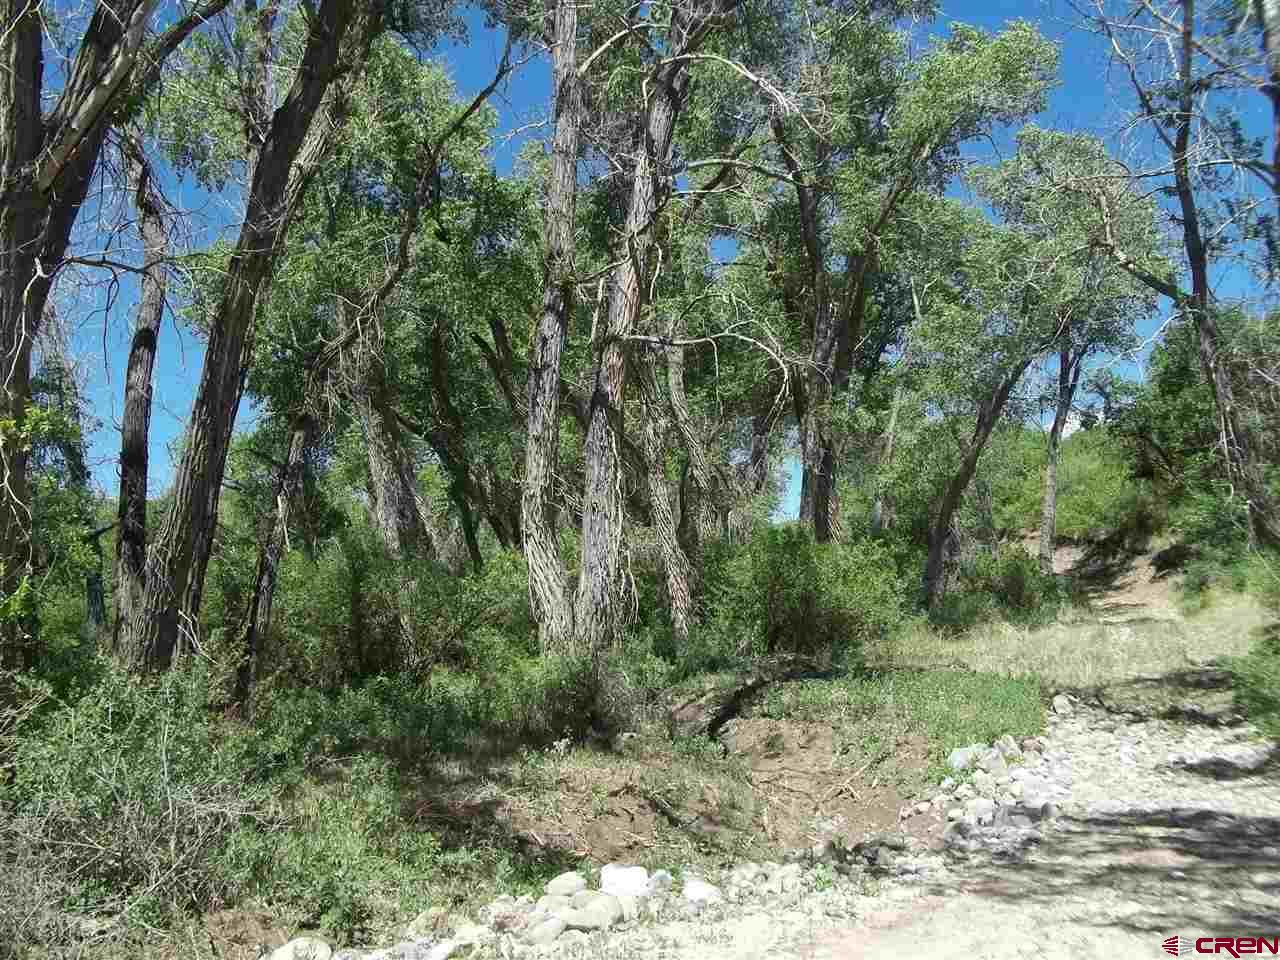 This parcel is located several miles behind locked gate.  The East Fork and the Middle Fork of Current flow through and join on this property.  There are lots of Cottonwood trees along the creeks the higher area of the property is sage brush with Cedar and Pinion Trees.  The property is joined by BLM to the West and North.  There is access to the USFS land to the North.  There are no utilities or domestic water available to the property.  This would make a great hunting property or summer get-a-way.  Please call for access.